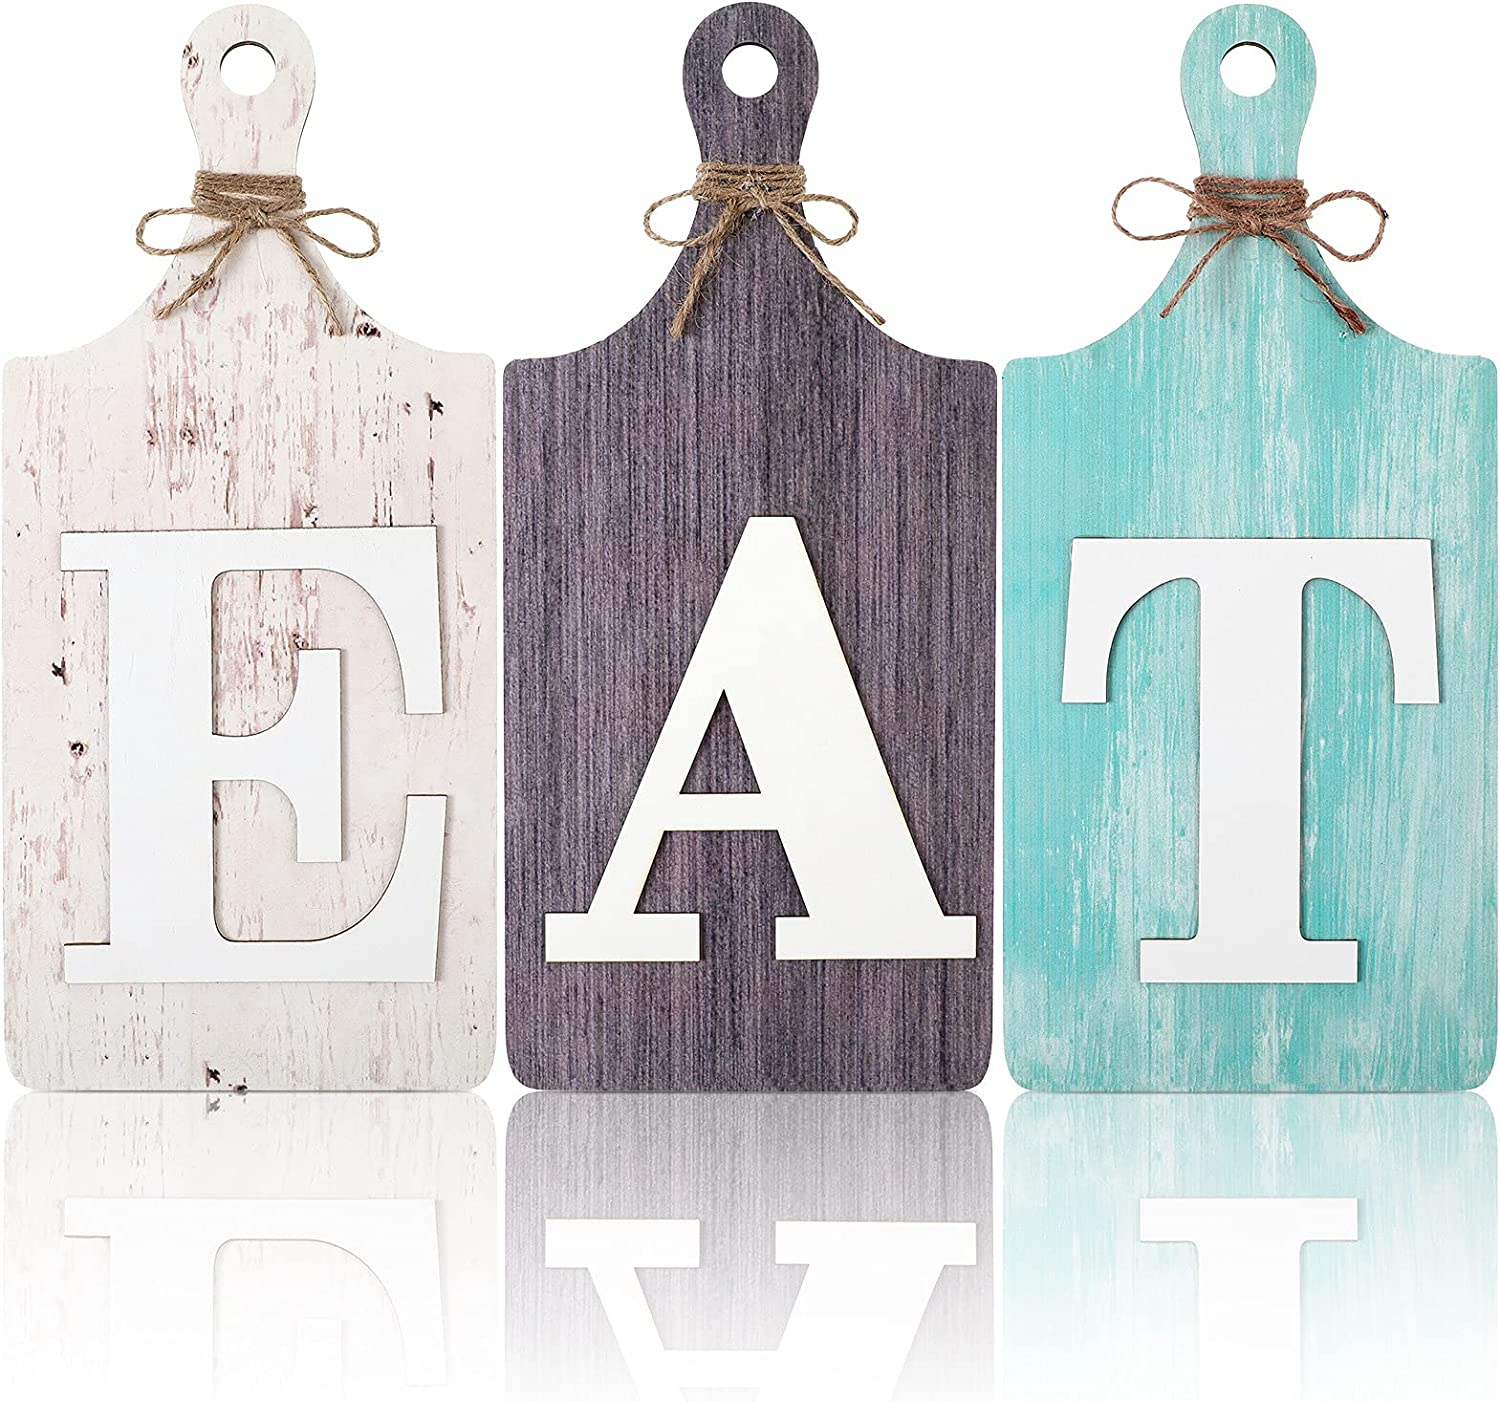 3 Pieces Rustic Wooden Eat Cutting Board Sign Hanging Wall Decor Large Farmhouse Eat Letters Wood Kitchen Sign for Home Kitchen Cabinets, Dining Living Room Restaurant Cafe